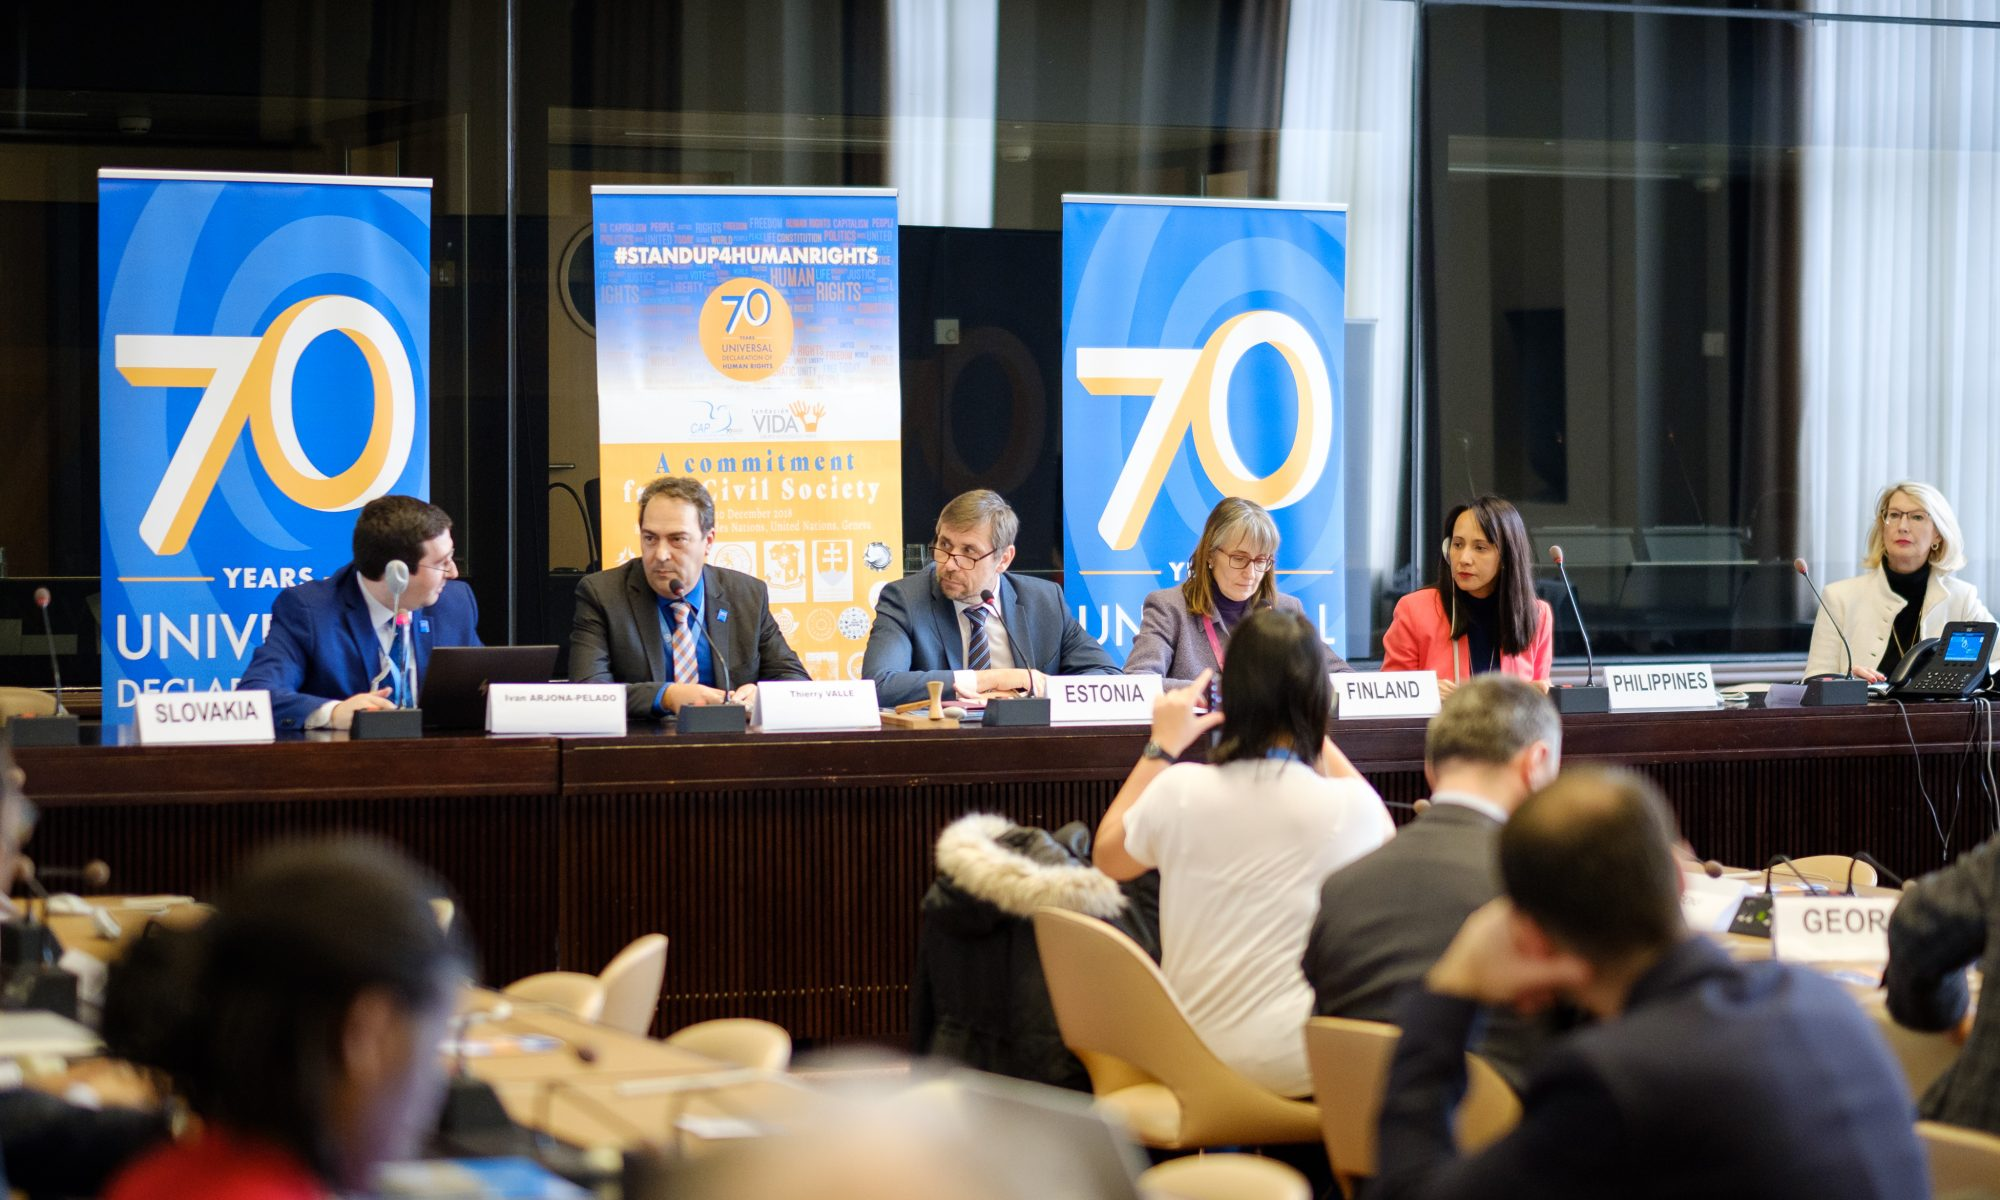 70 years of the U.N. Universal Declaration on Human Rights